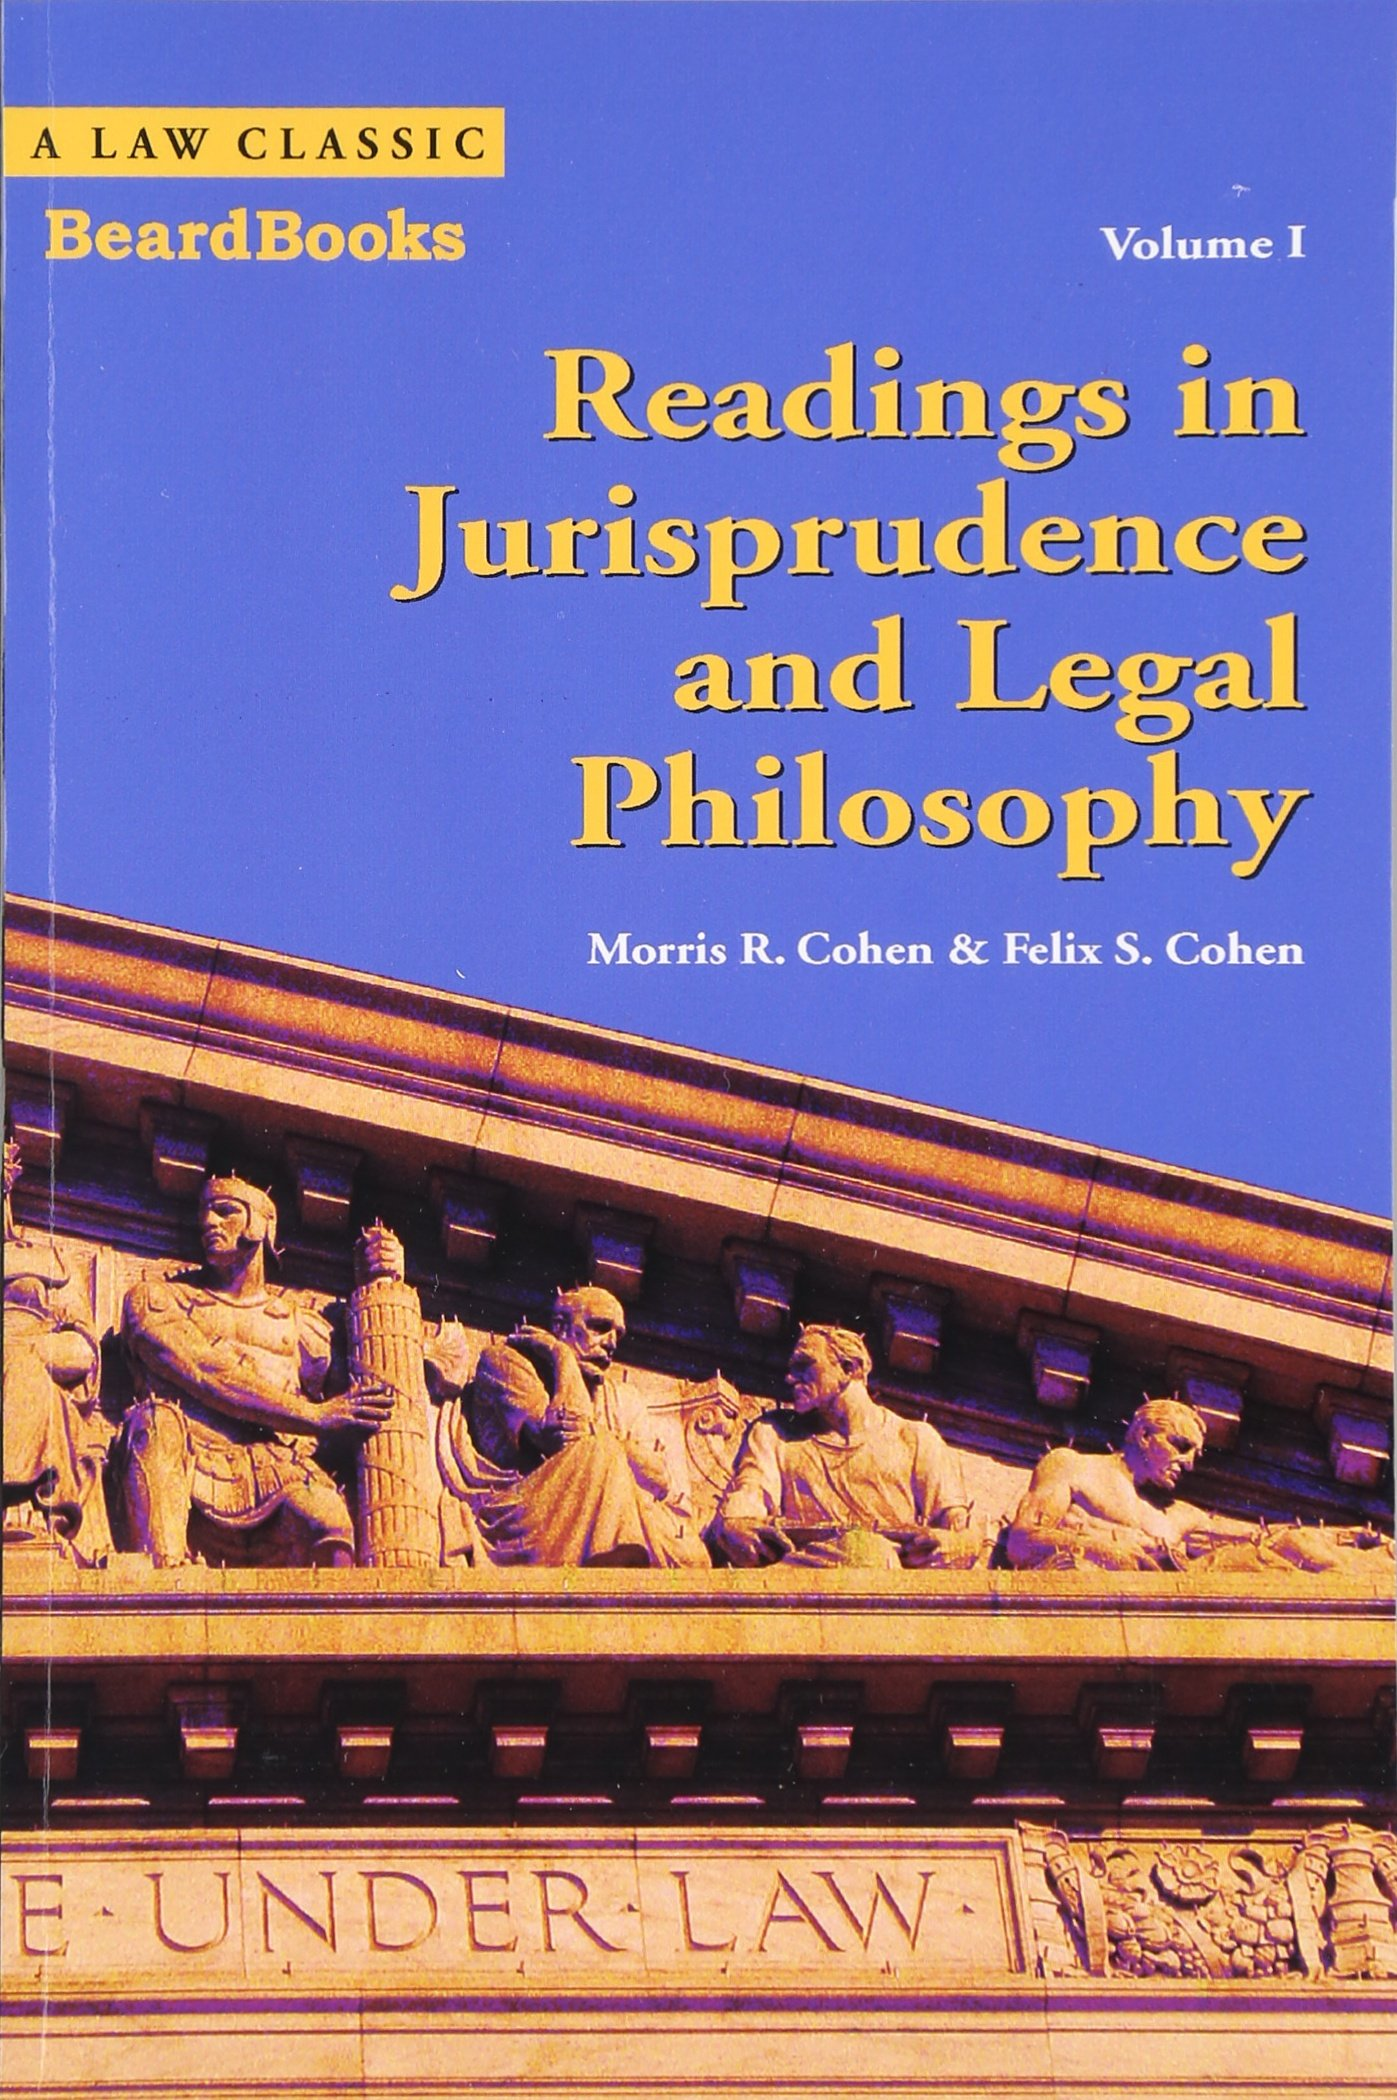 Image OfReadings In Jurisprudence And Legal Philosophy, Vol. 1